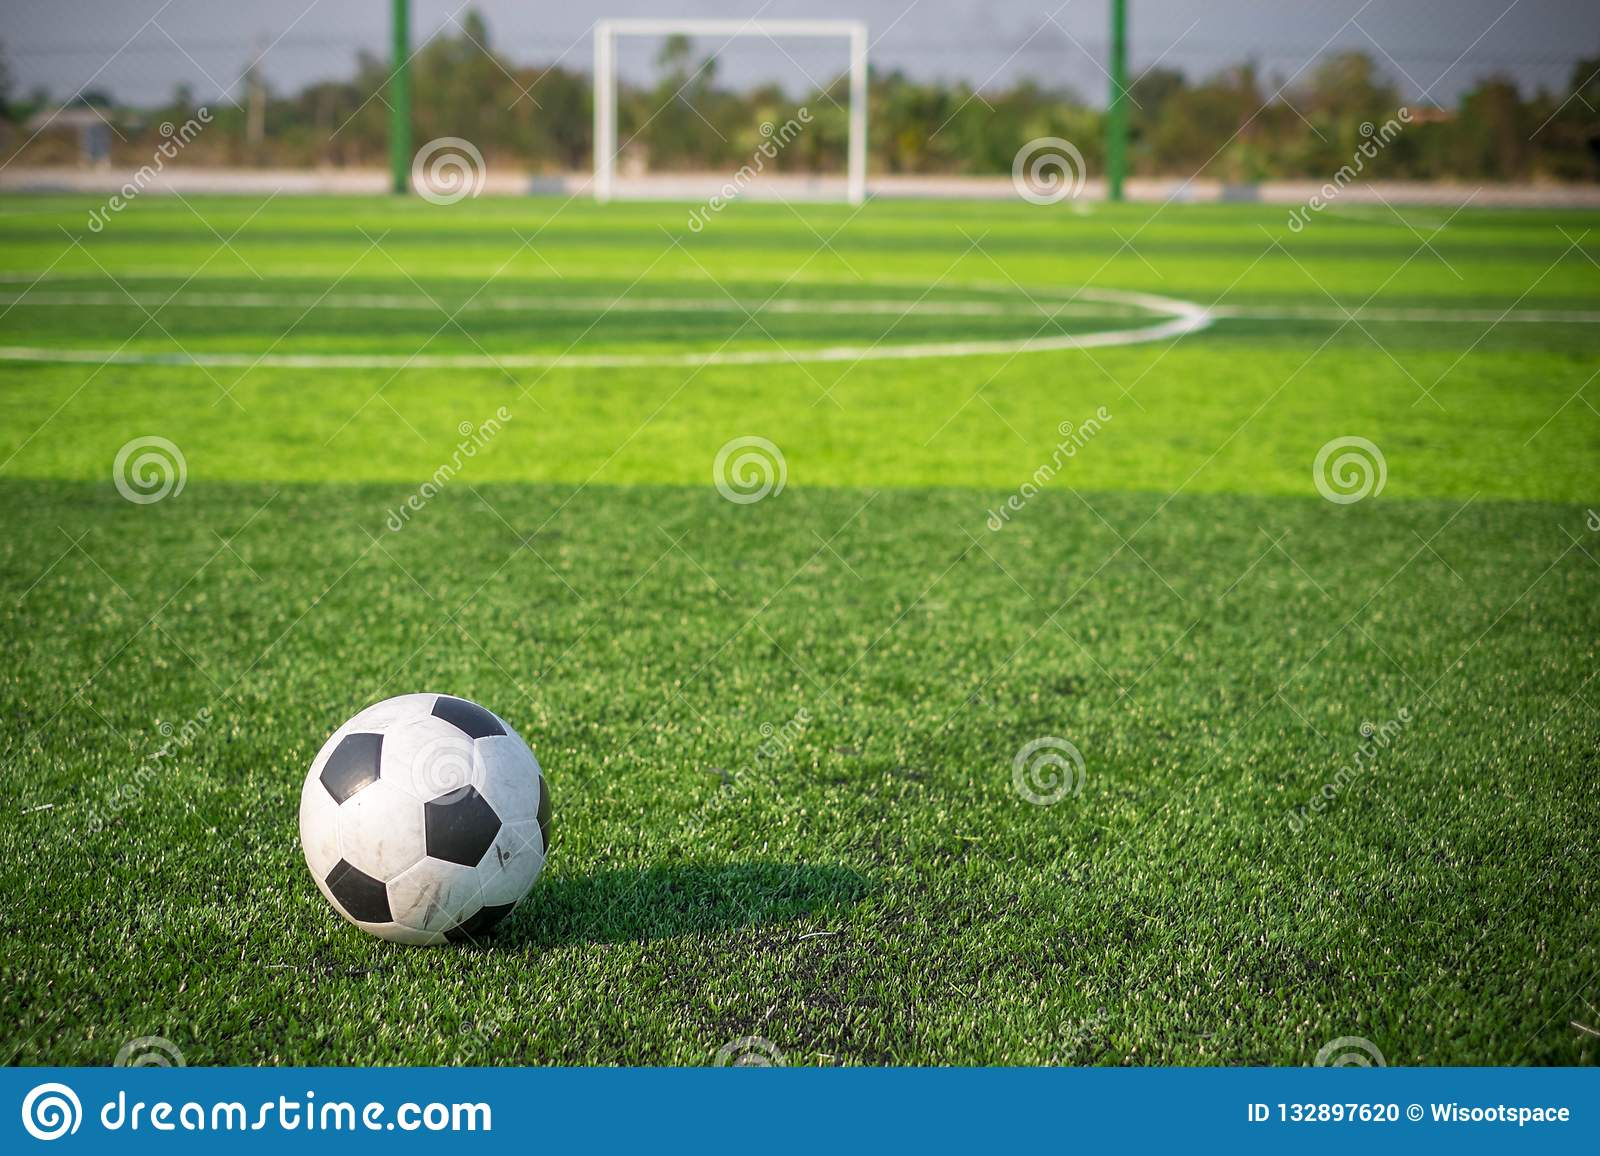 c1c40a147 Soccer football on green grass field and goal post Classic soccer ball on  artificial bright and dark green grass at public outdoor football or futsal  ...